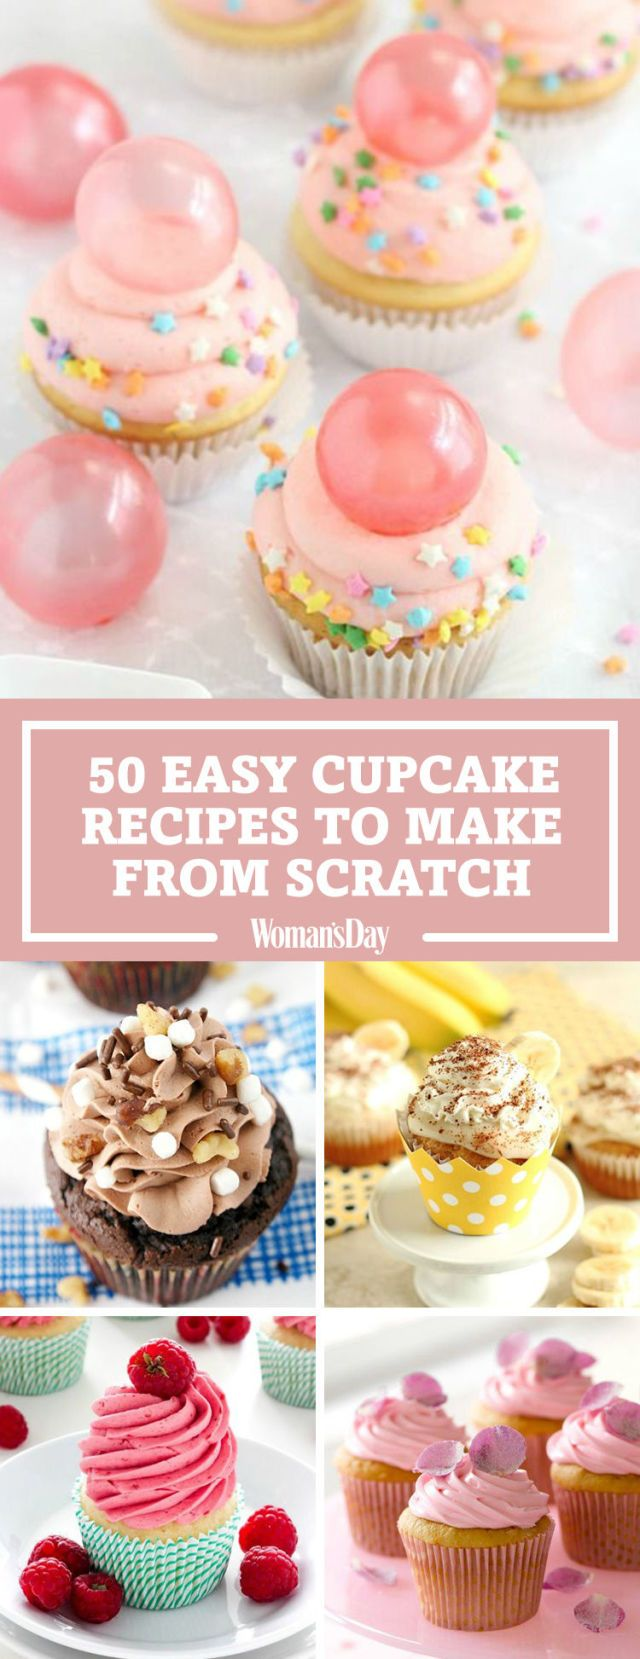 Save these easy cupcake recipes for later by pinning this image and follow Woman's Day on Pinterest for more.